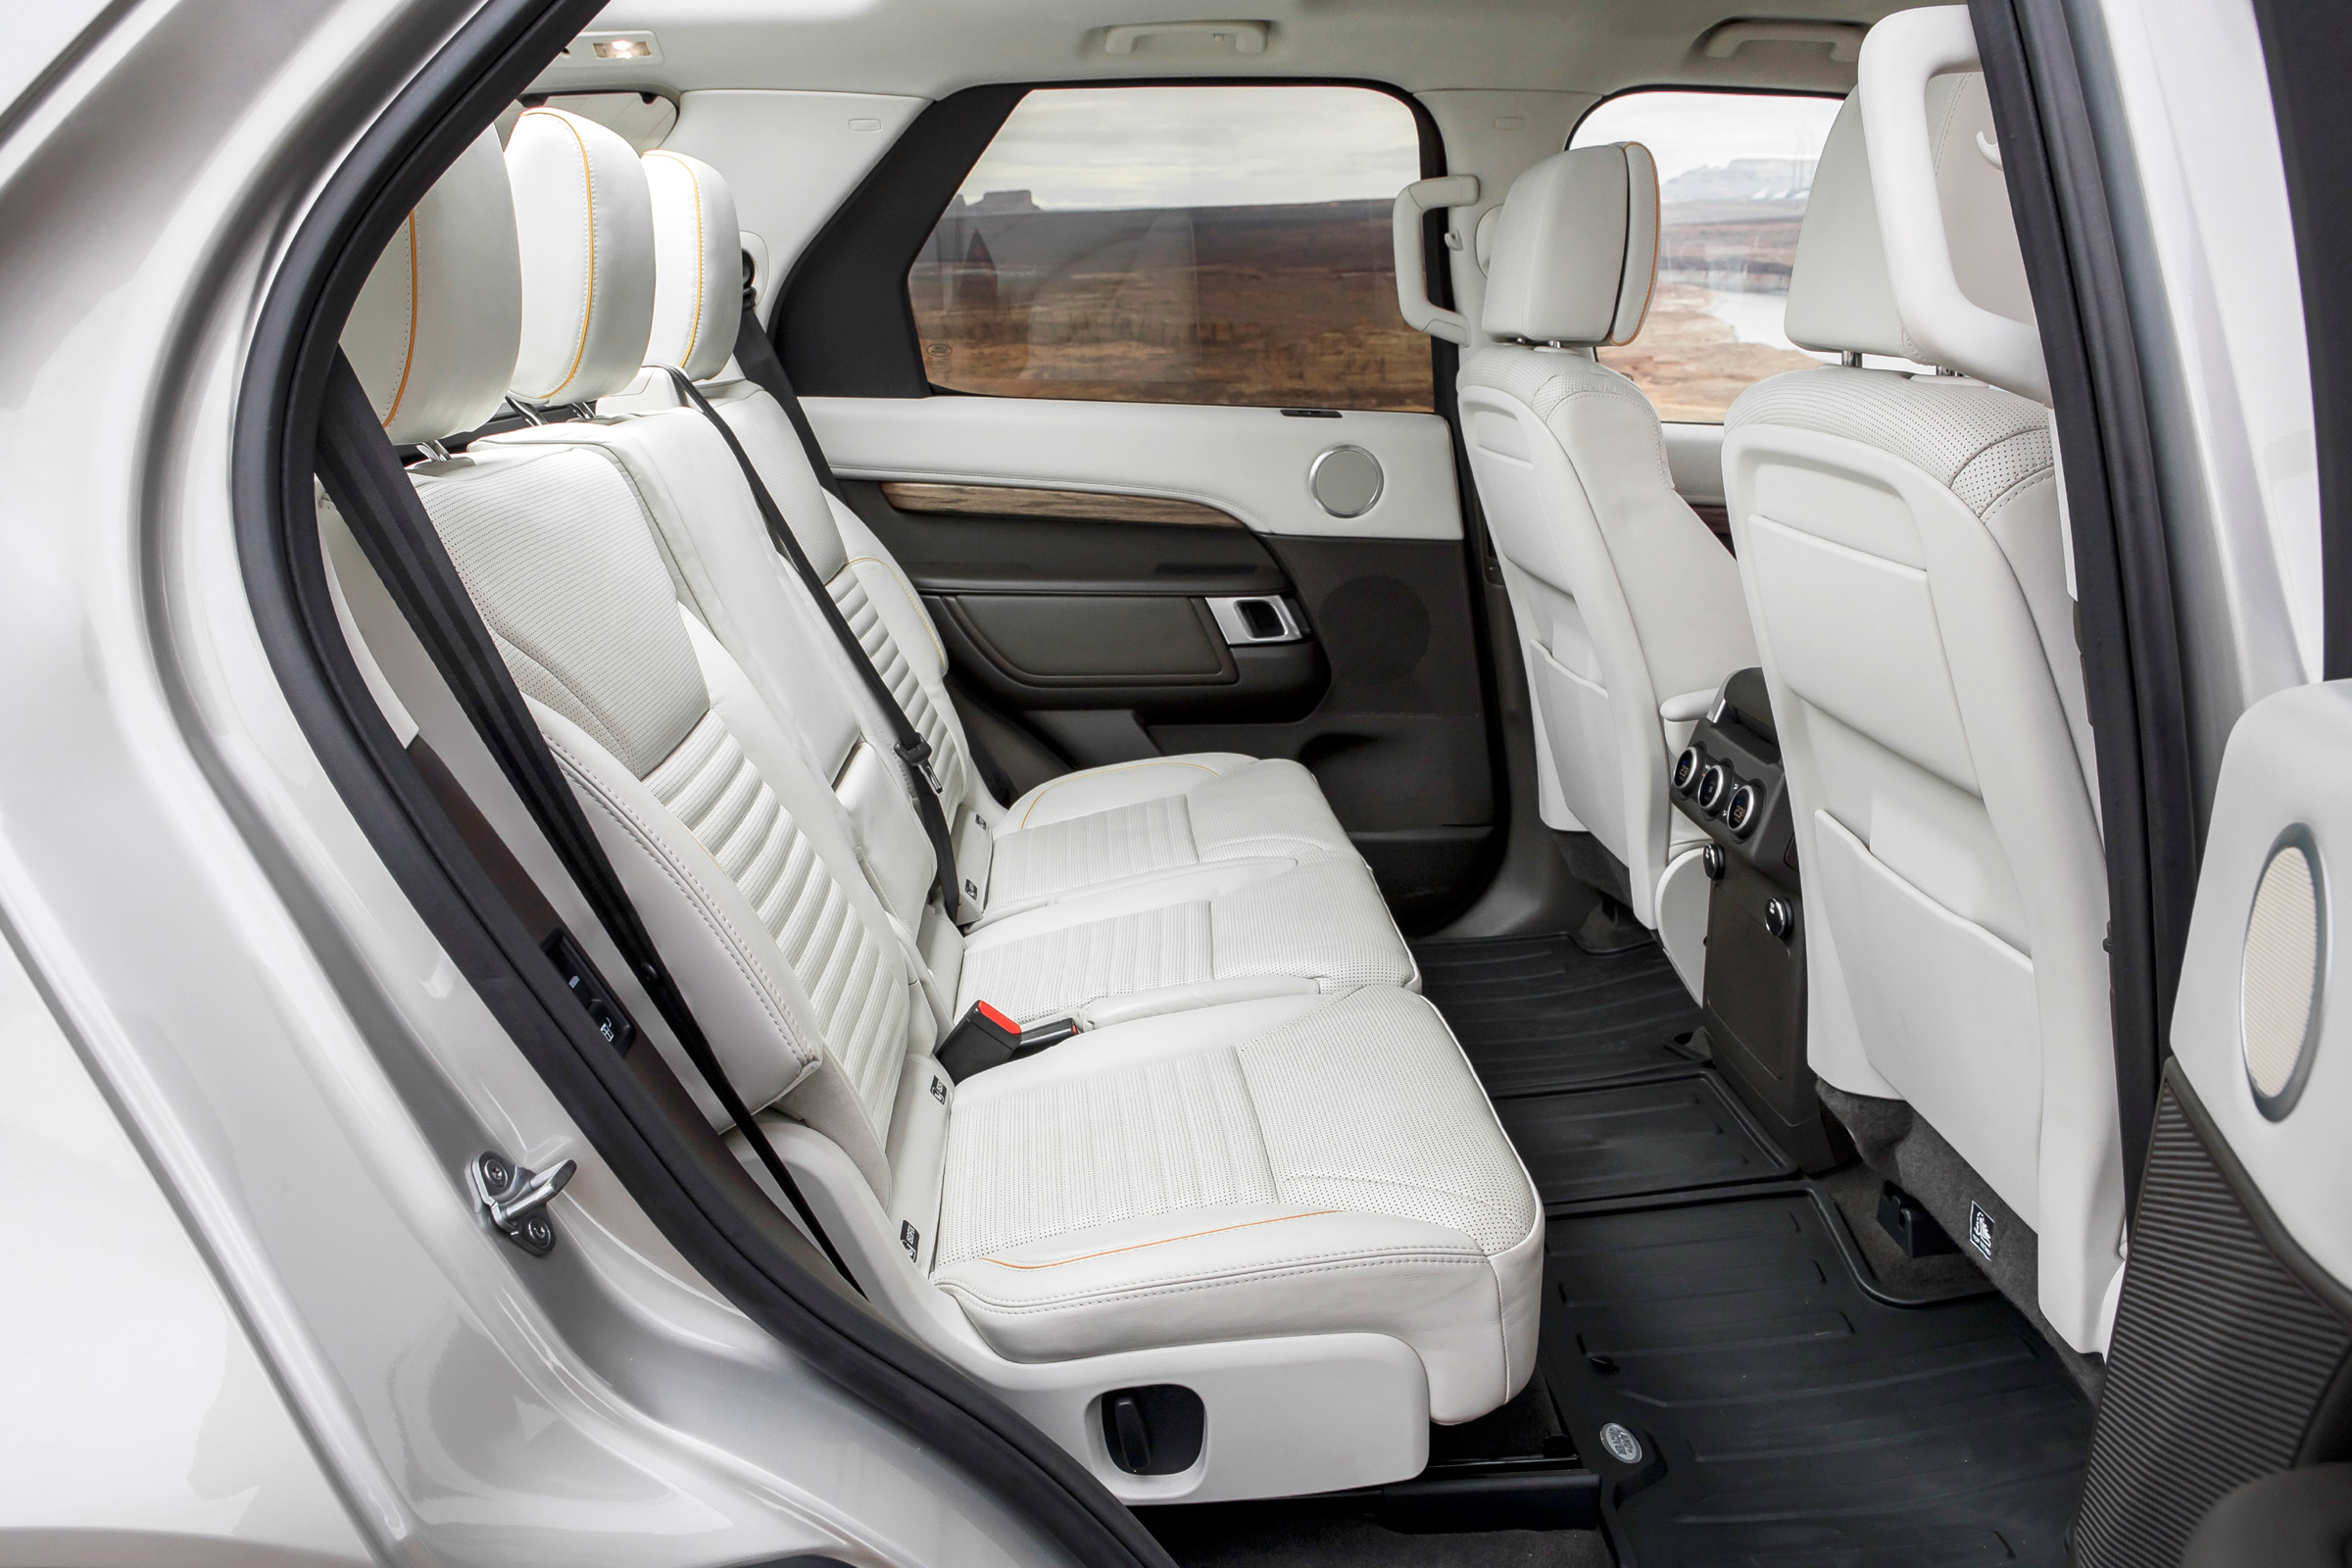 2017 Land Rover Discovery Interior Seats Rear (Photo 6 of 17)